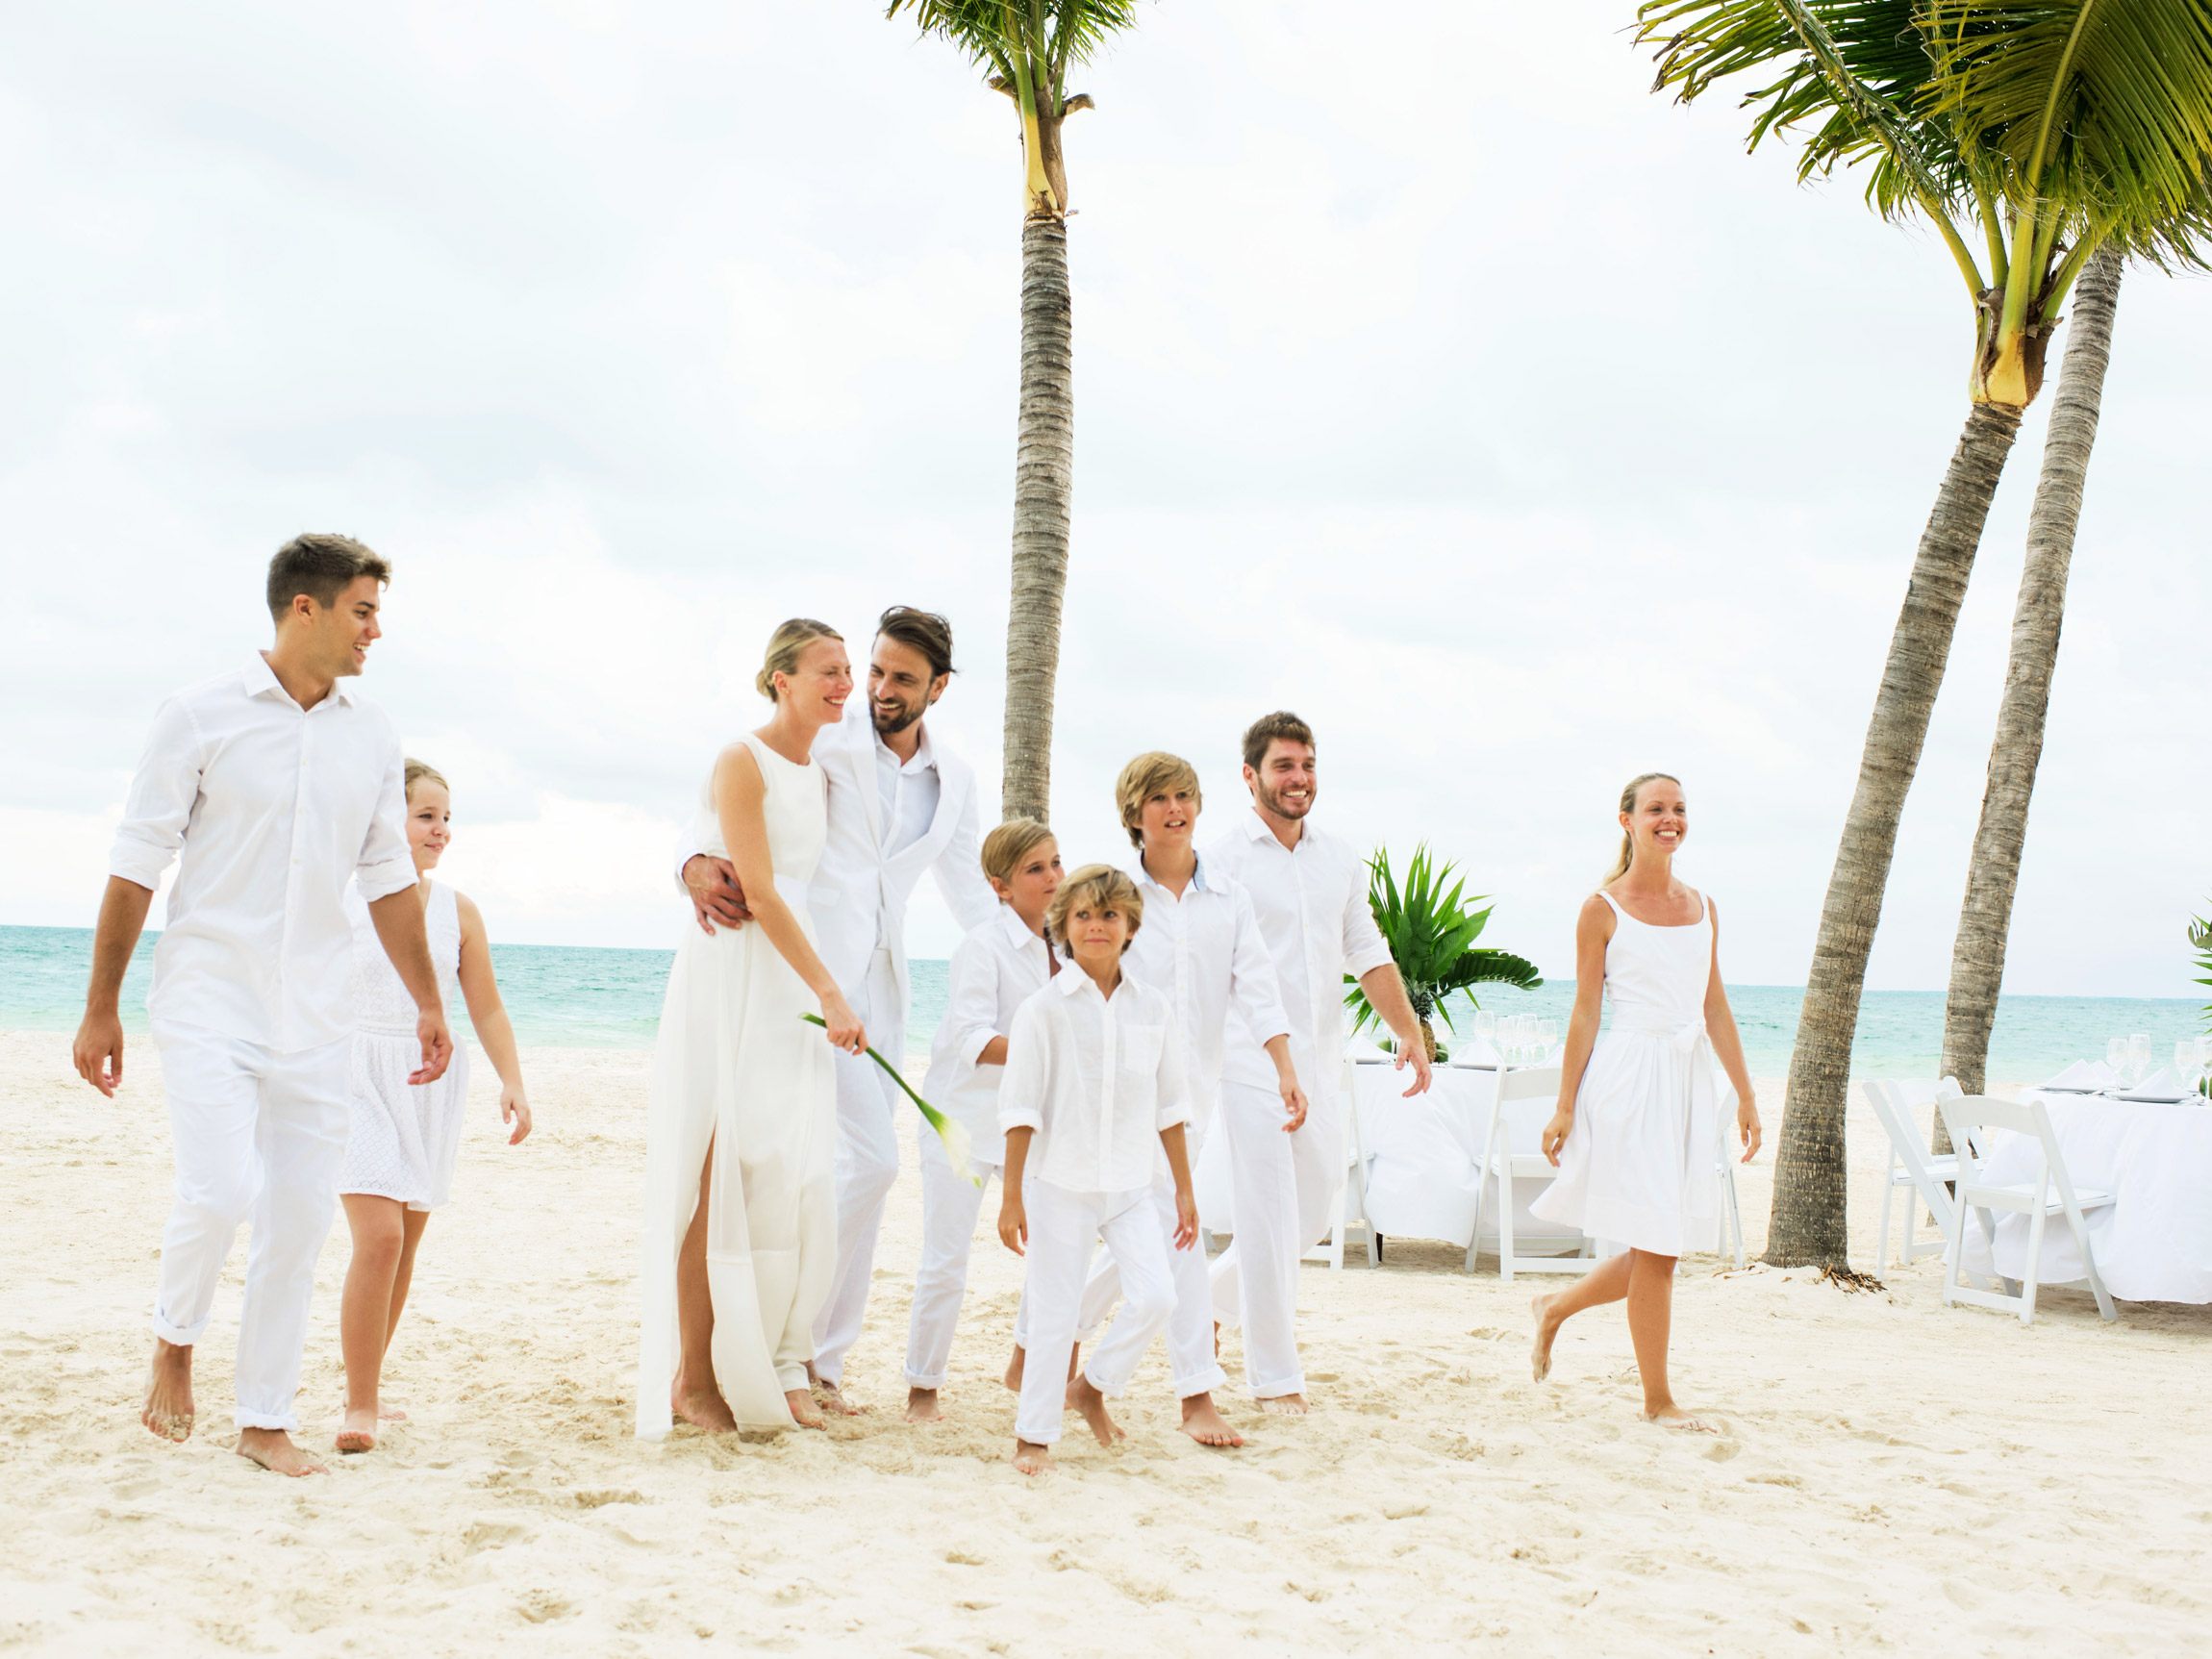 Dominican Republic Resort Deals for Groups